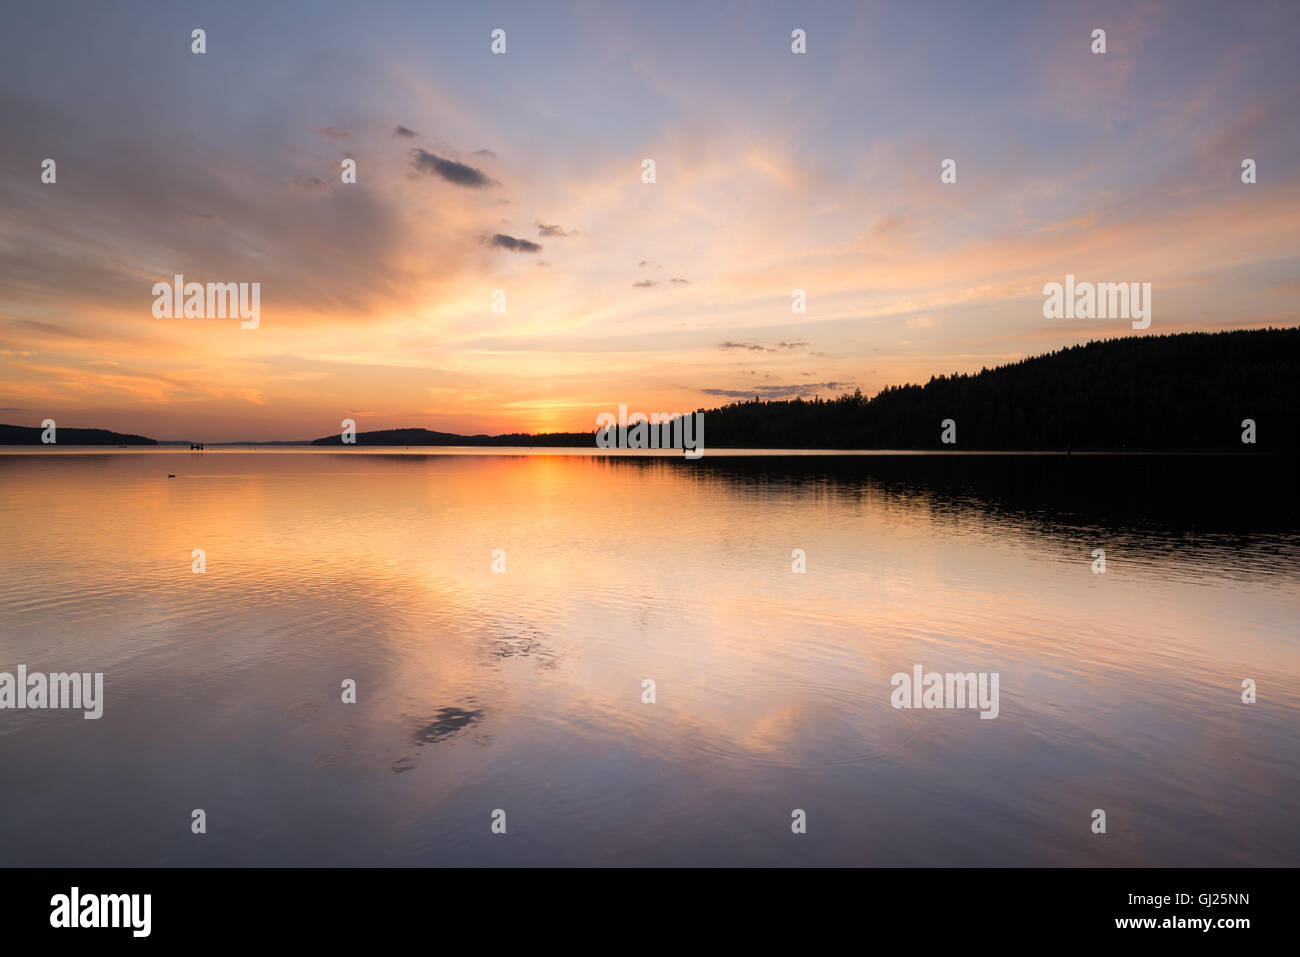 Clam lake at sunset - Stock Image